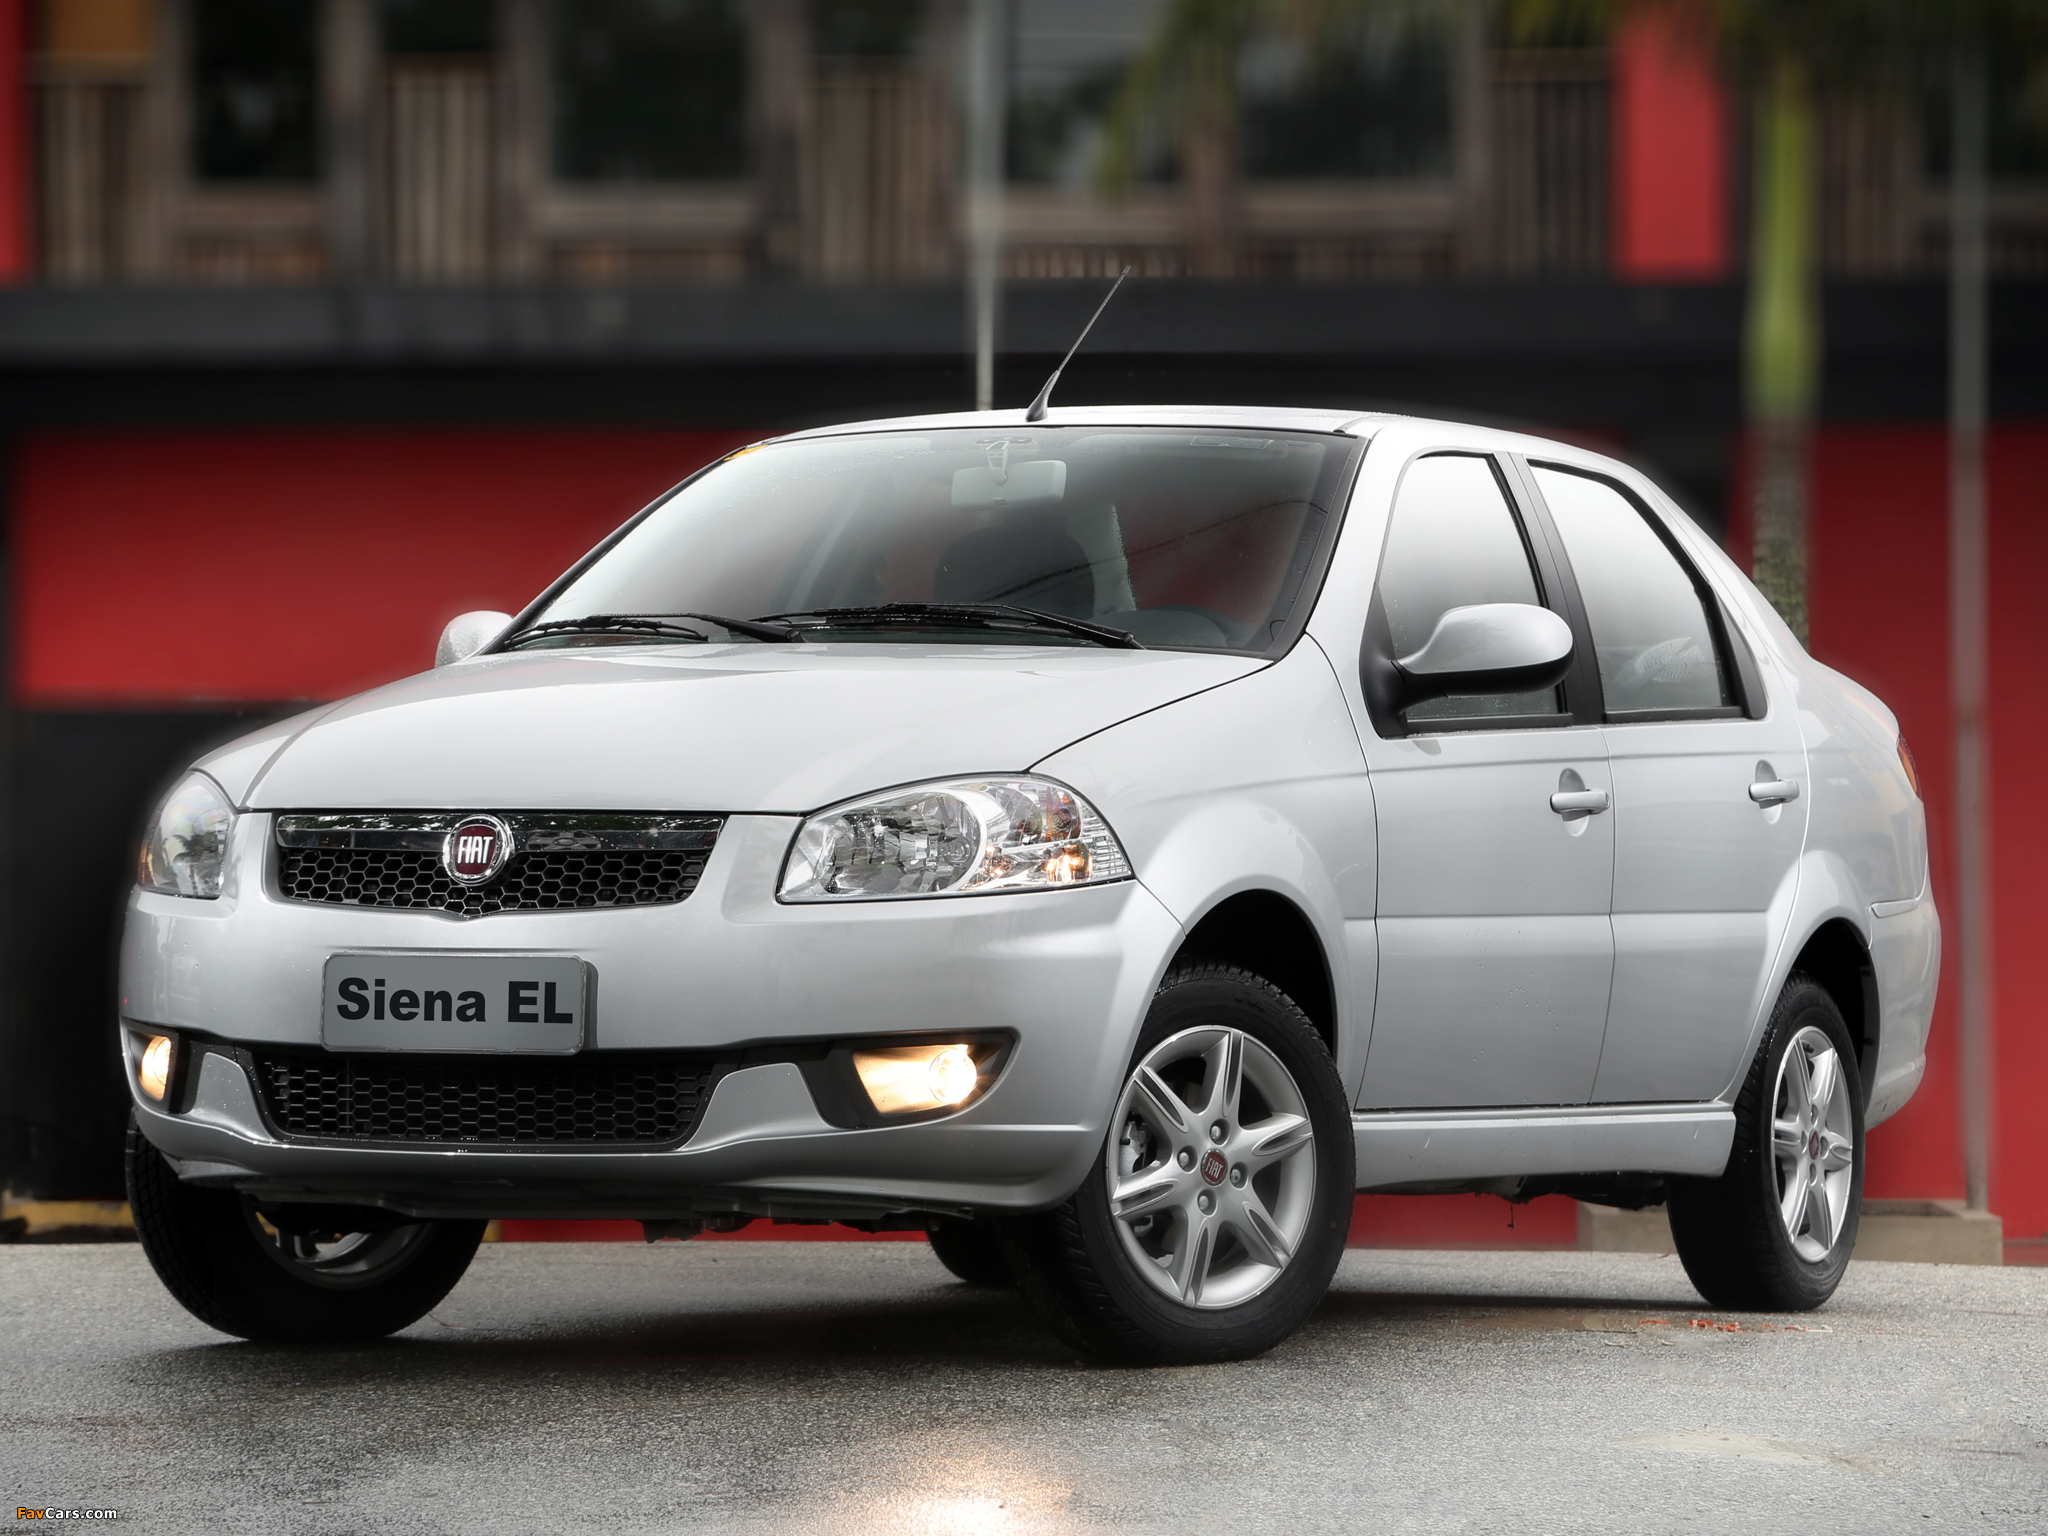 Fiat Siena EL (178) 2012 wallpapers (2048 x 1536)